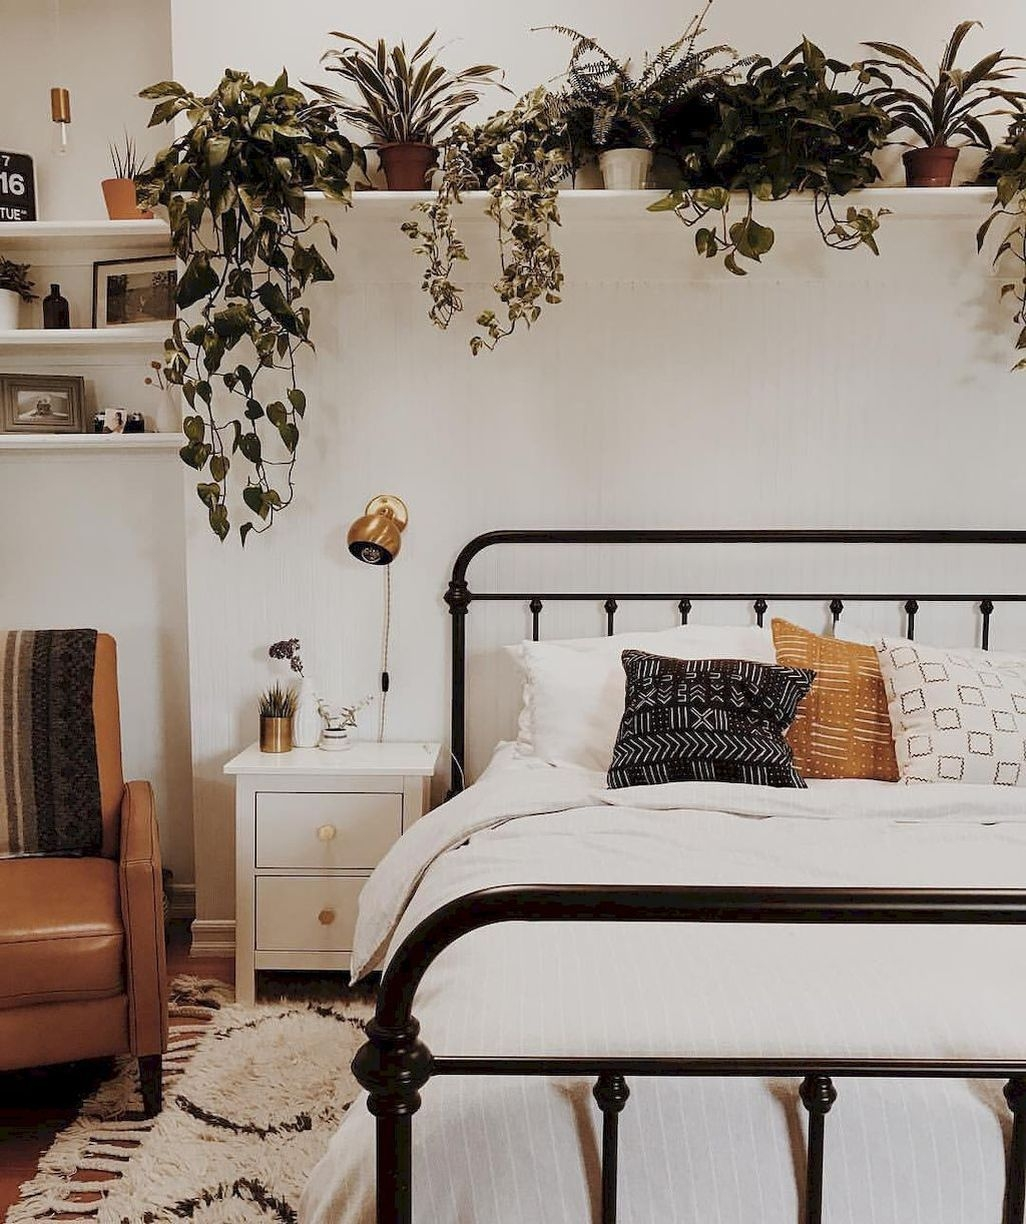 49 Affordable First Apartment Decorating Ideas On A Budget